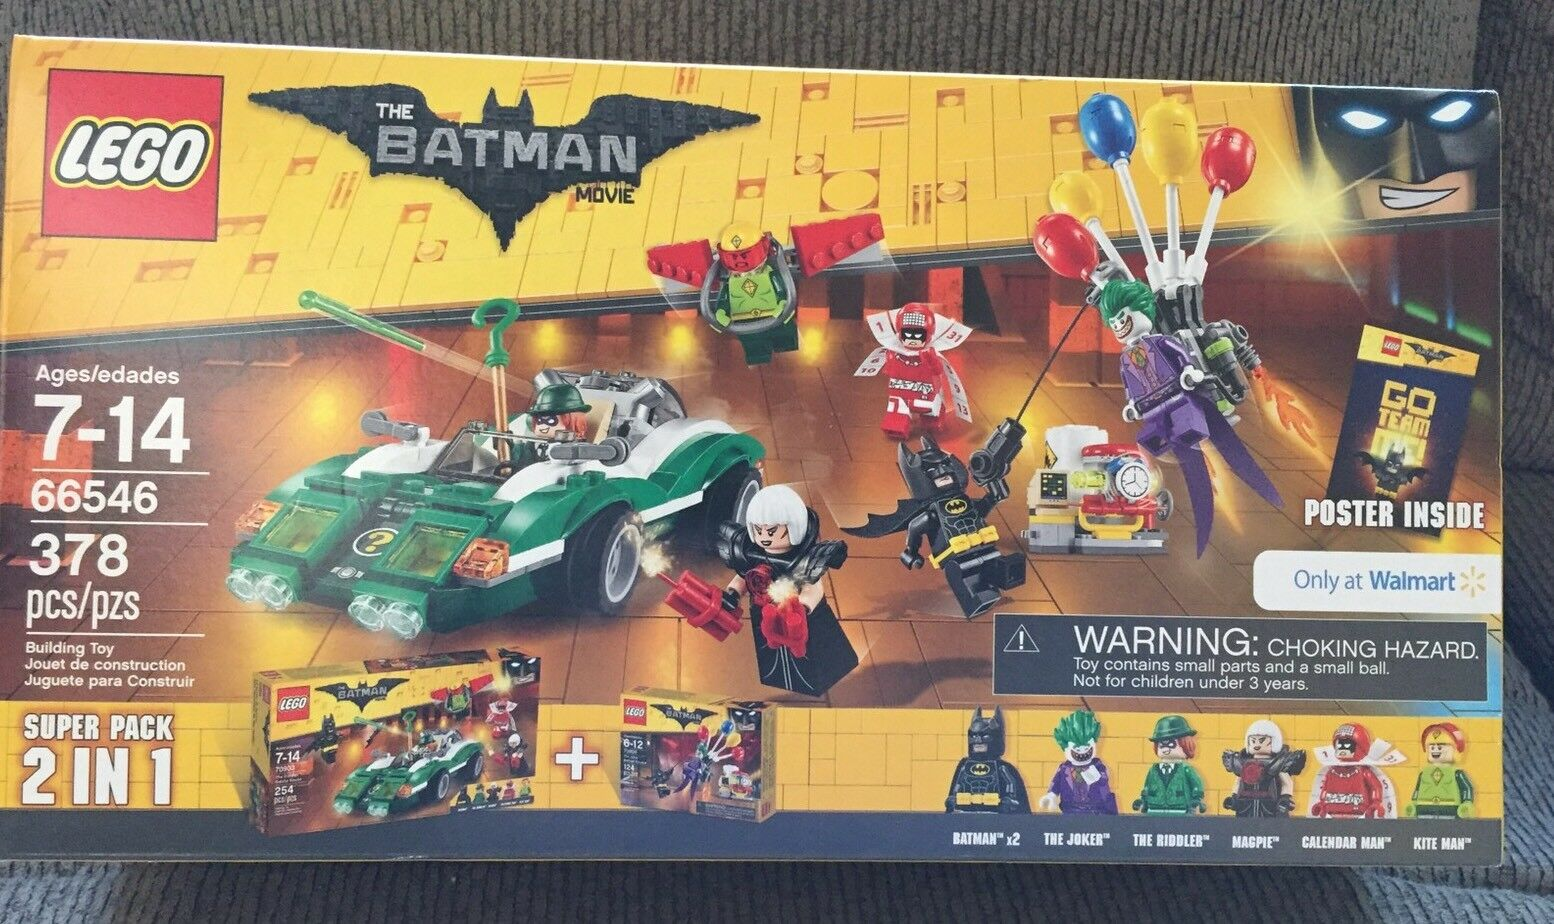 Lego Batman Película 66546 Super Pack 2 en 1 Walmart Limited Edition 70900 70903